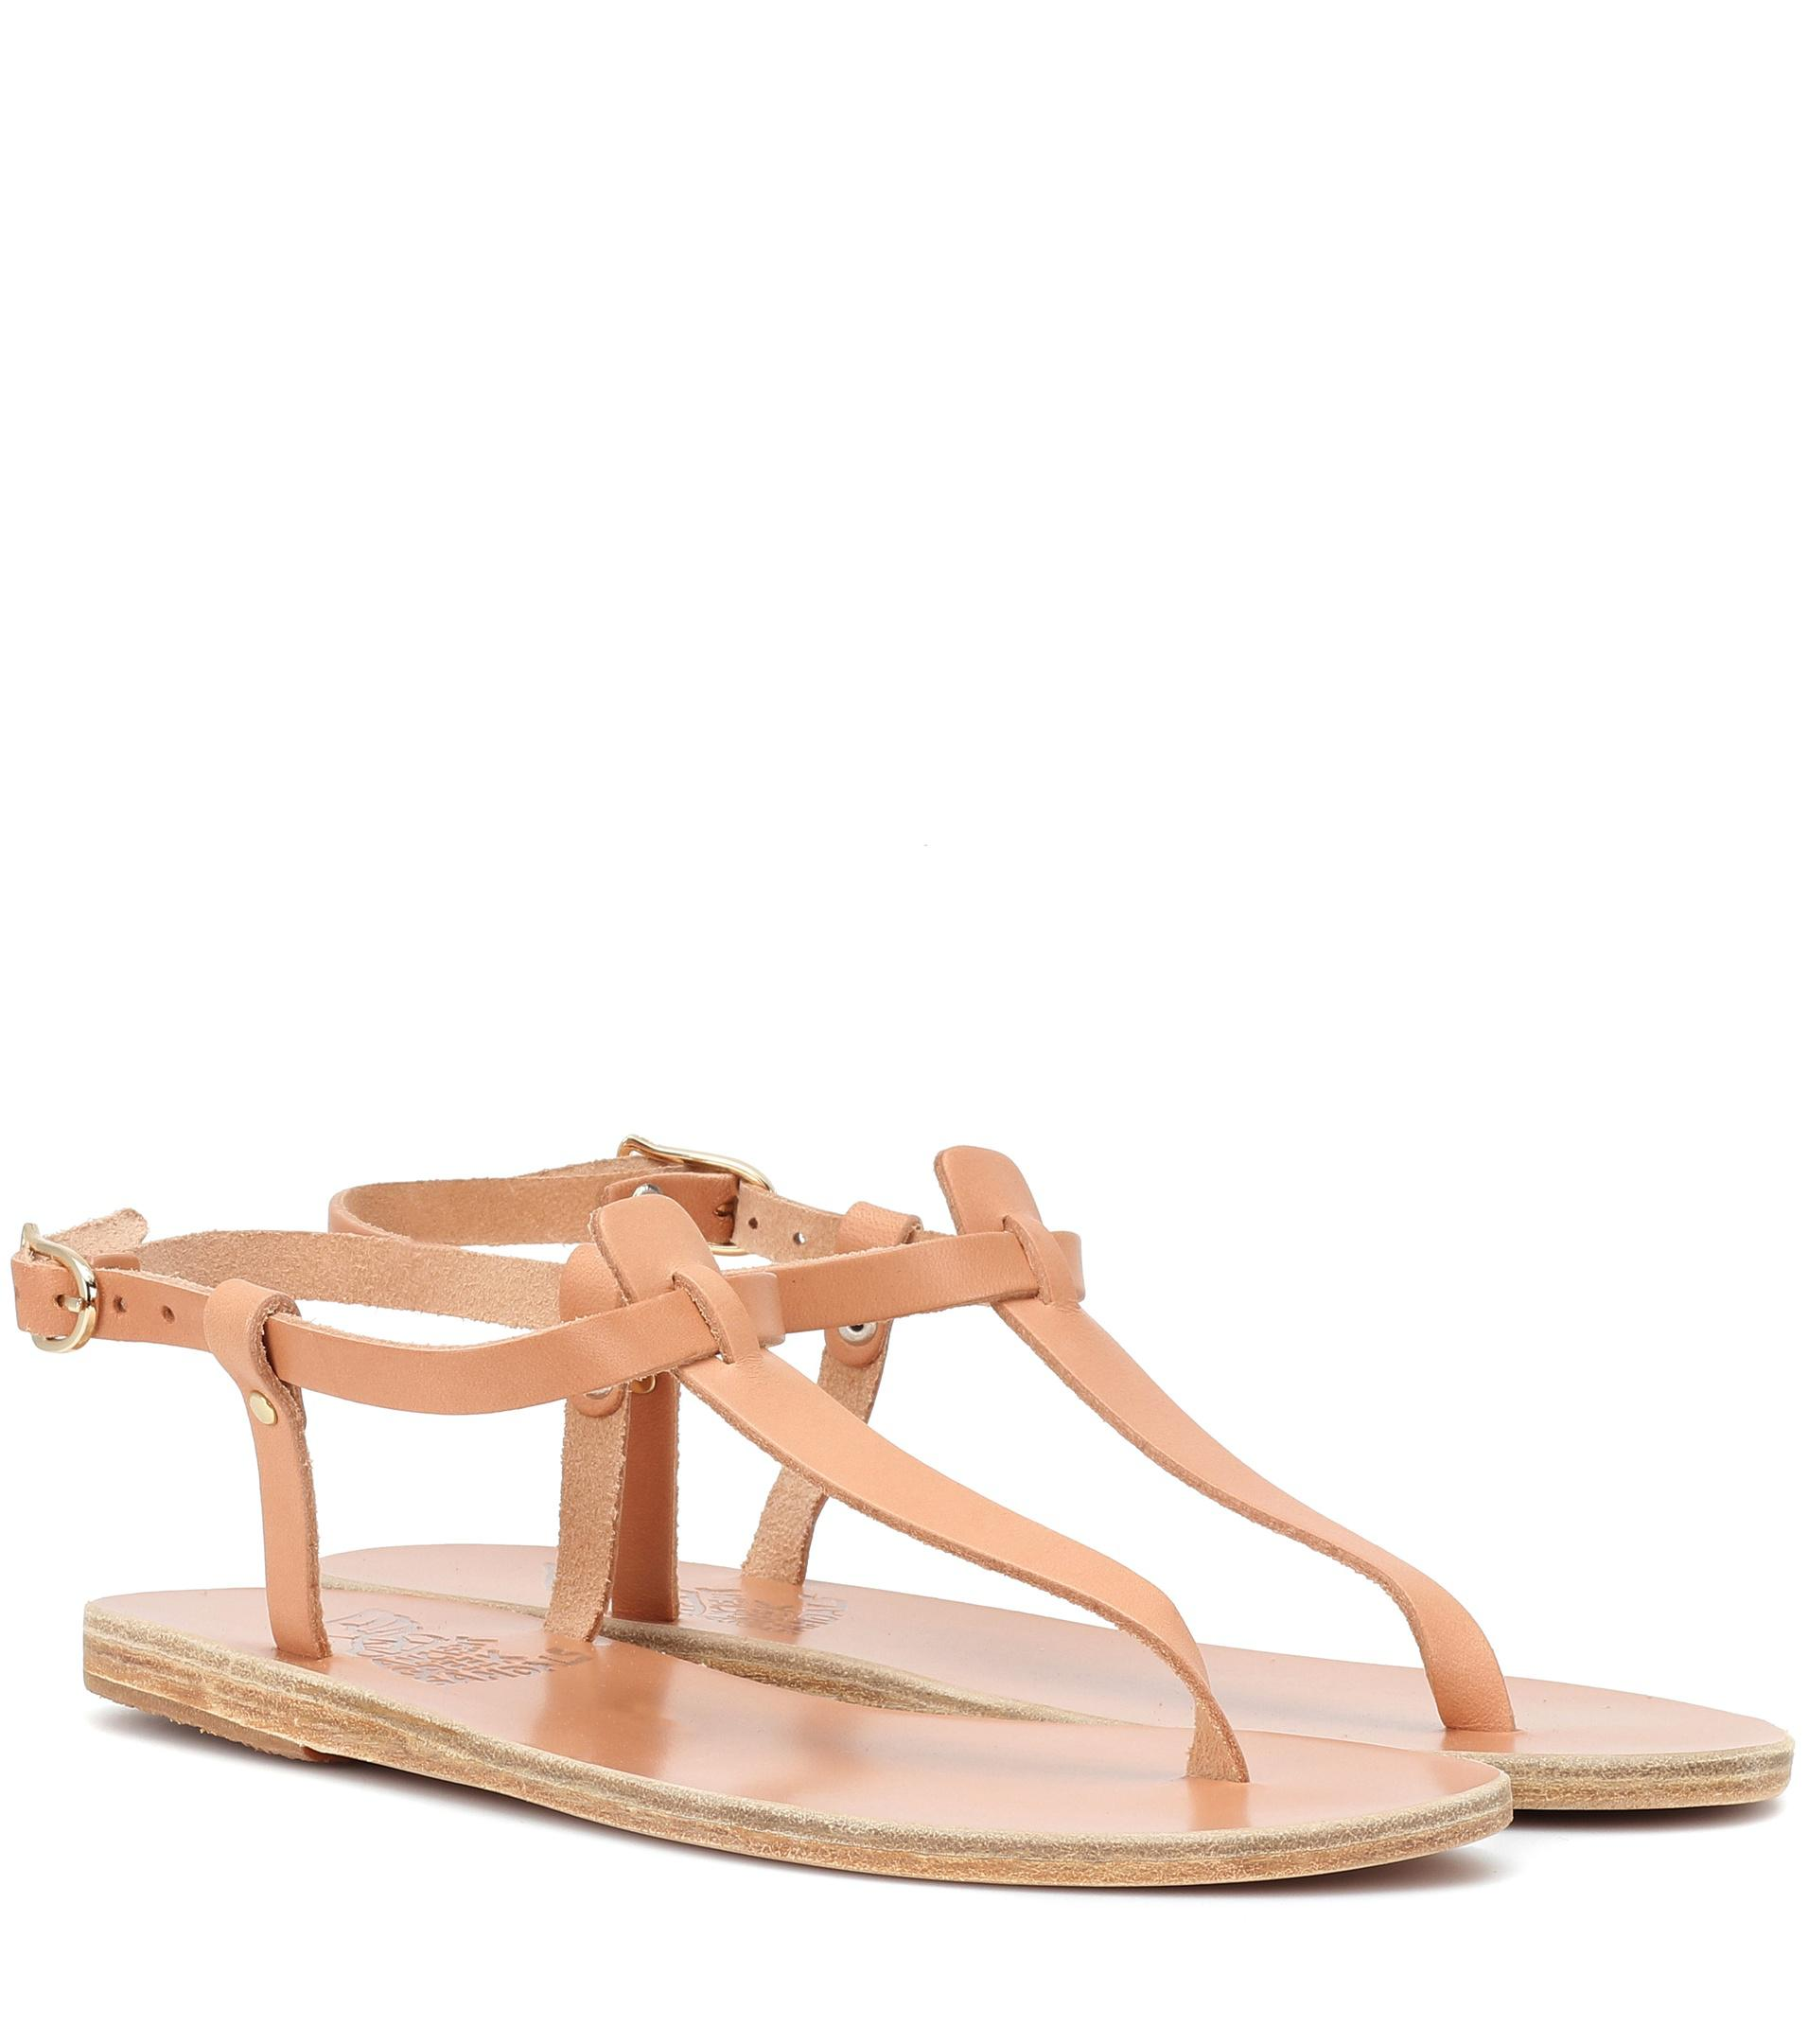 86230b3f960 Ancient Greek Sandals Lito Leather Sandals in Brown - Lyst